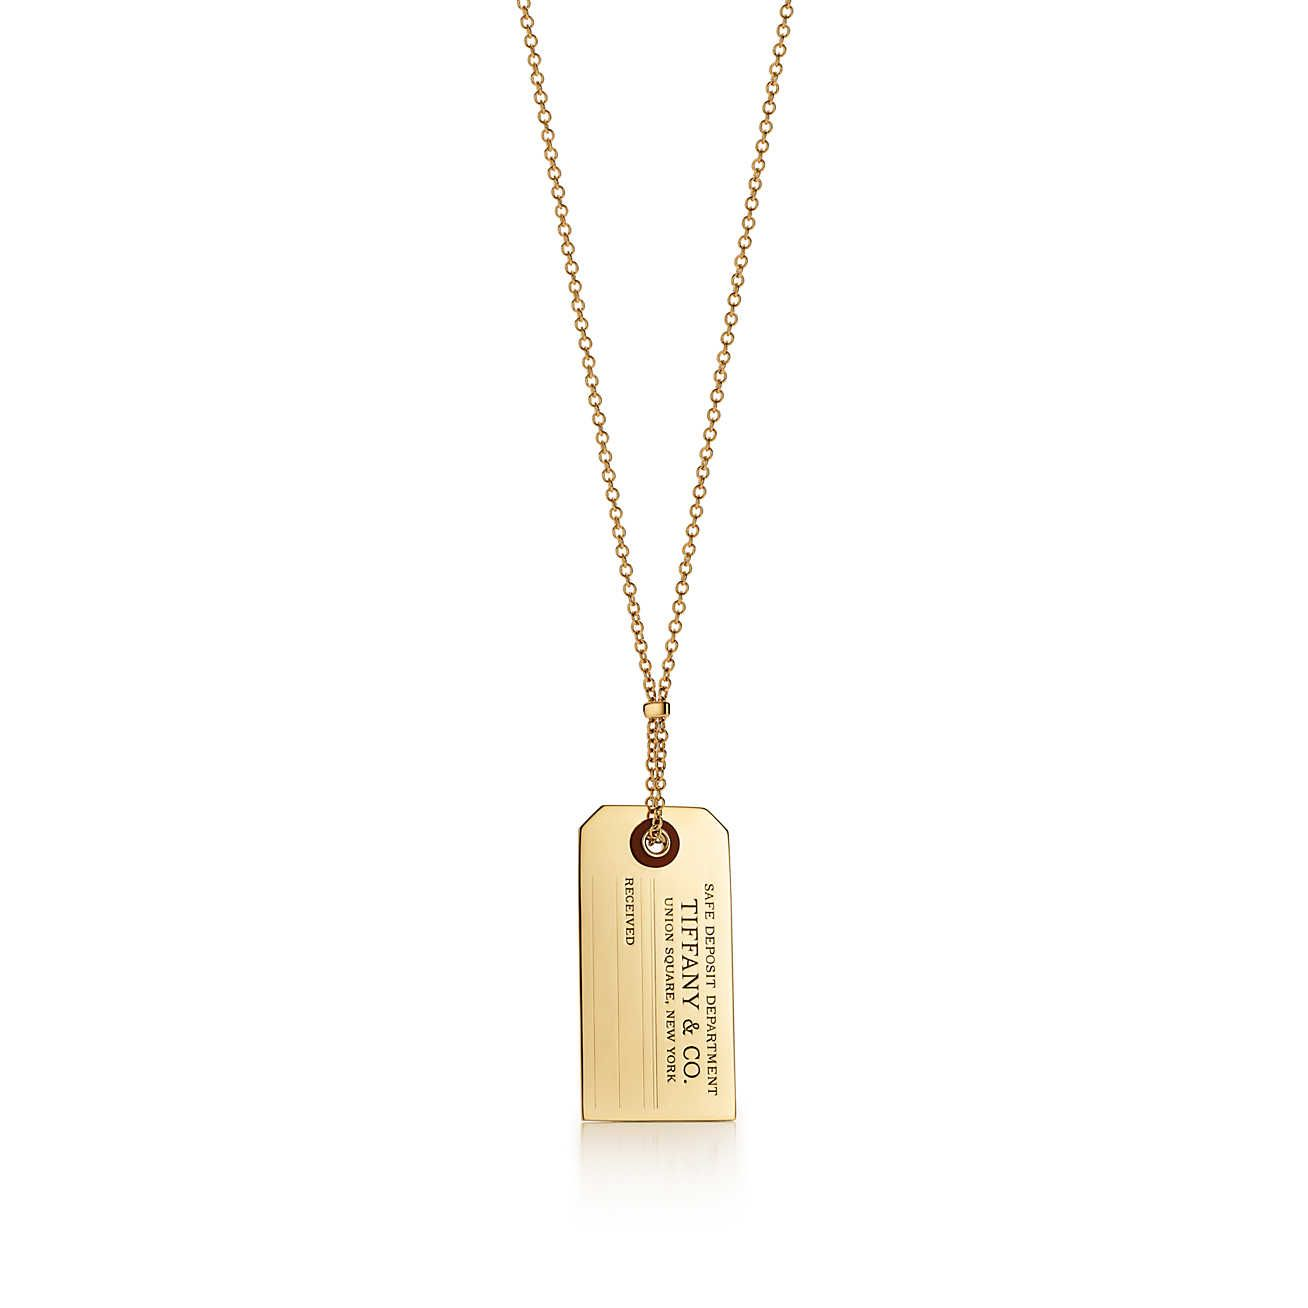 01f0973ba Tiffany Charms price tag pendant in 18k gold with carnelian, large.